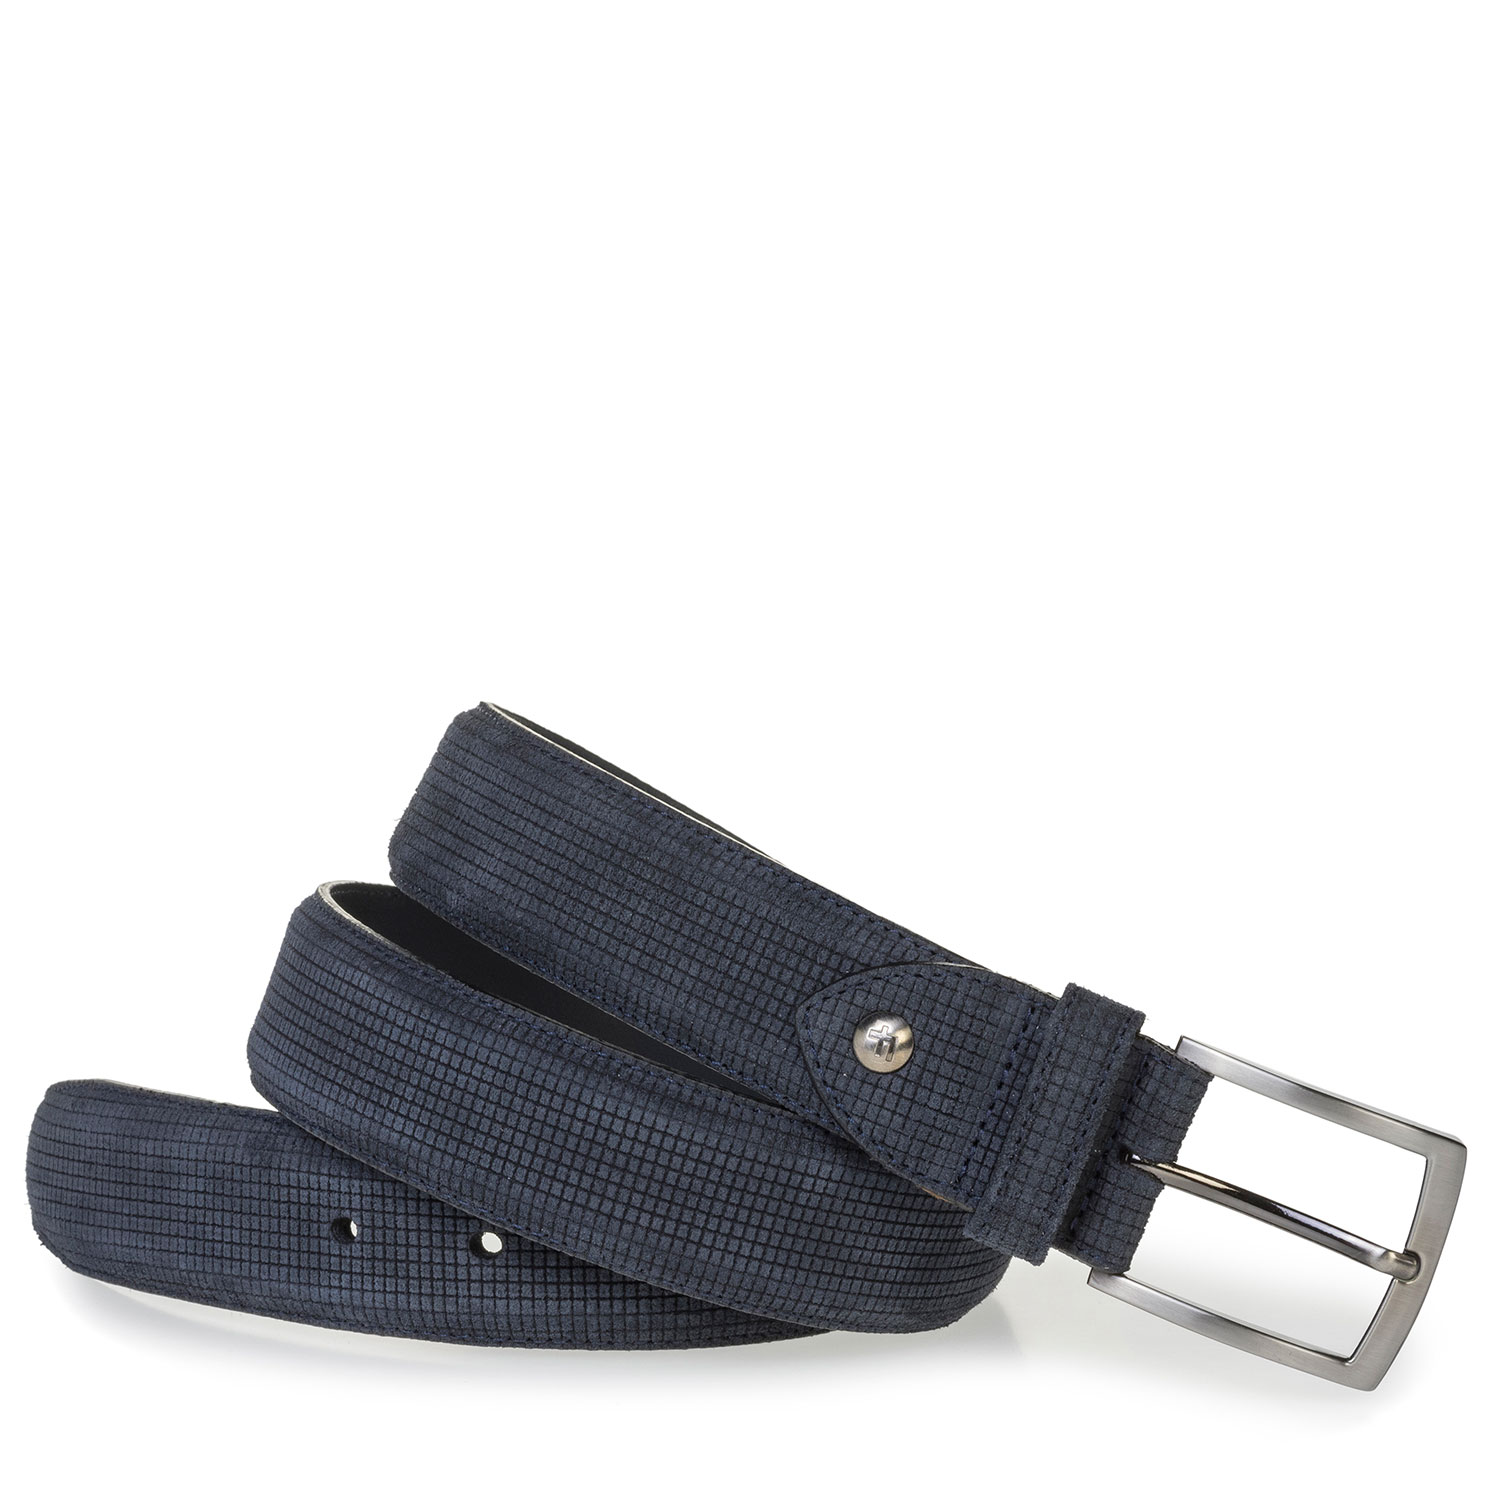 75201/96 - Dark blue suede leather belt with a print